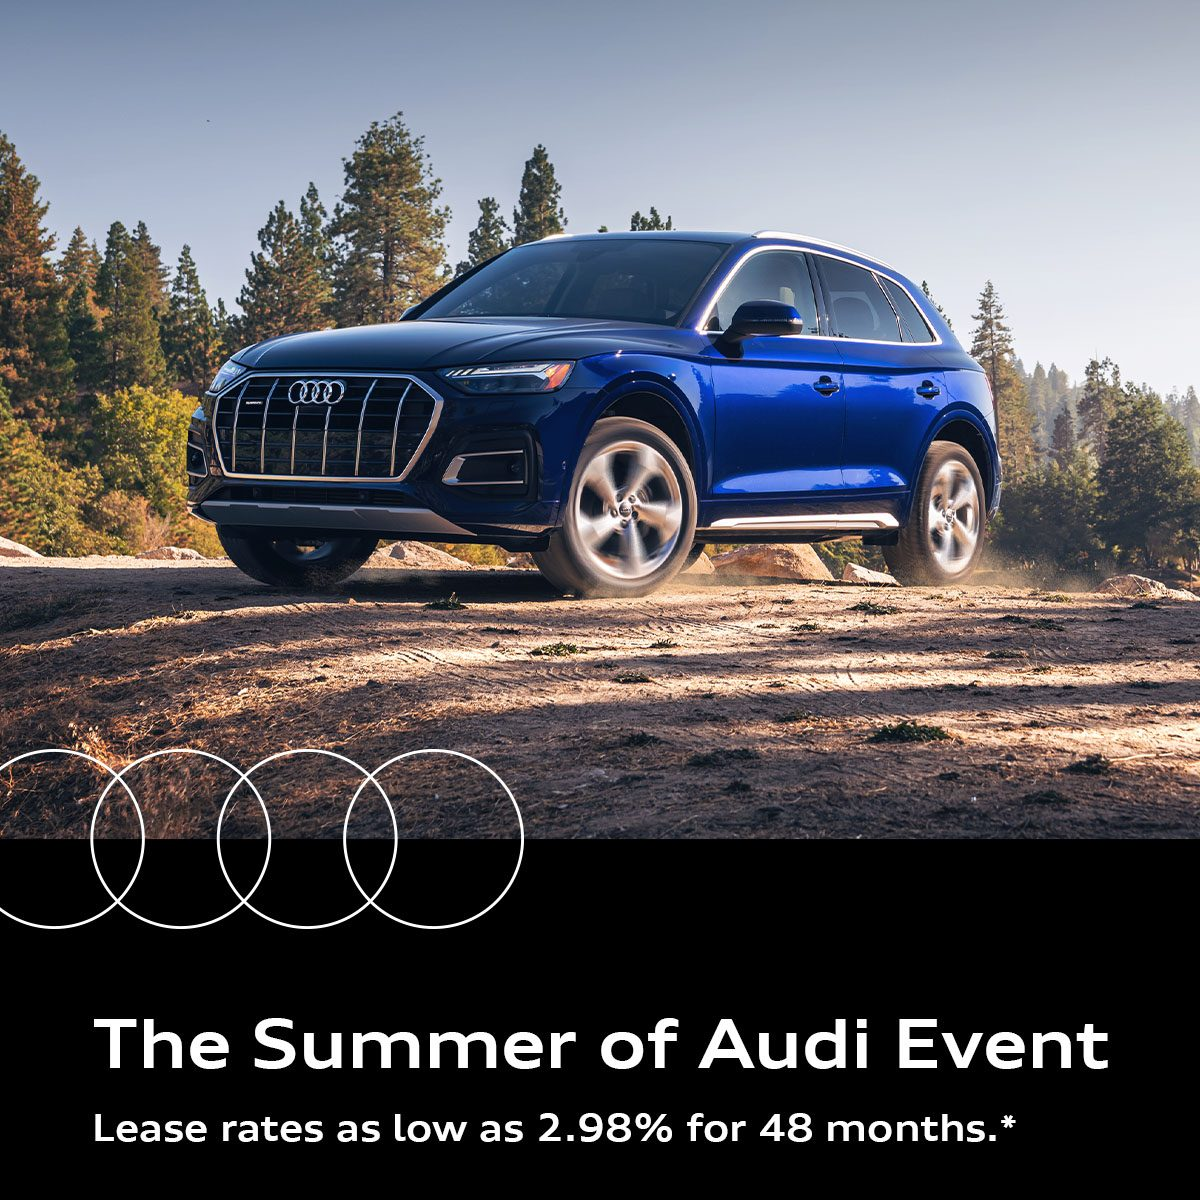 The Summer of Audi Event – Q5